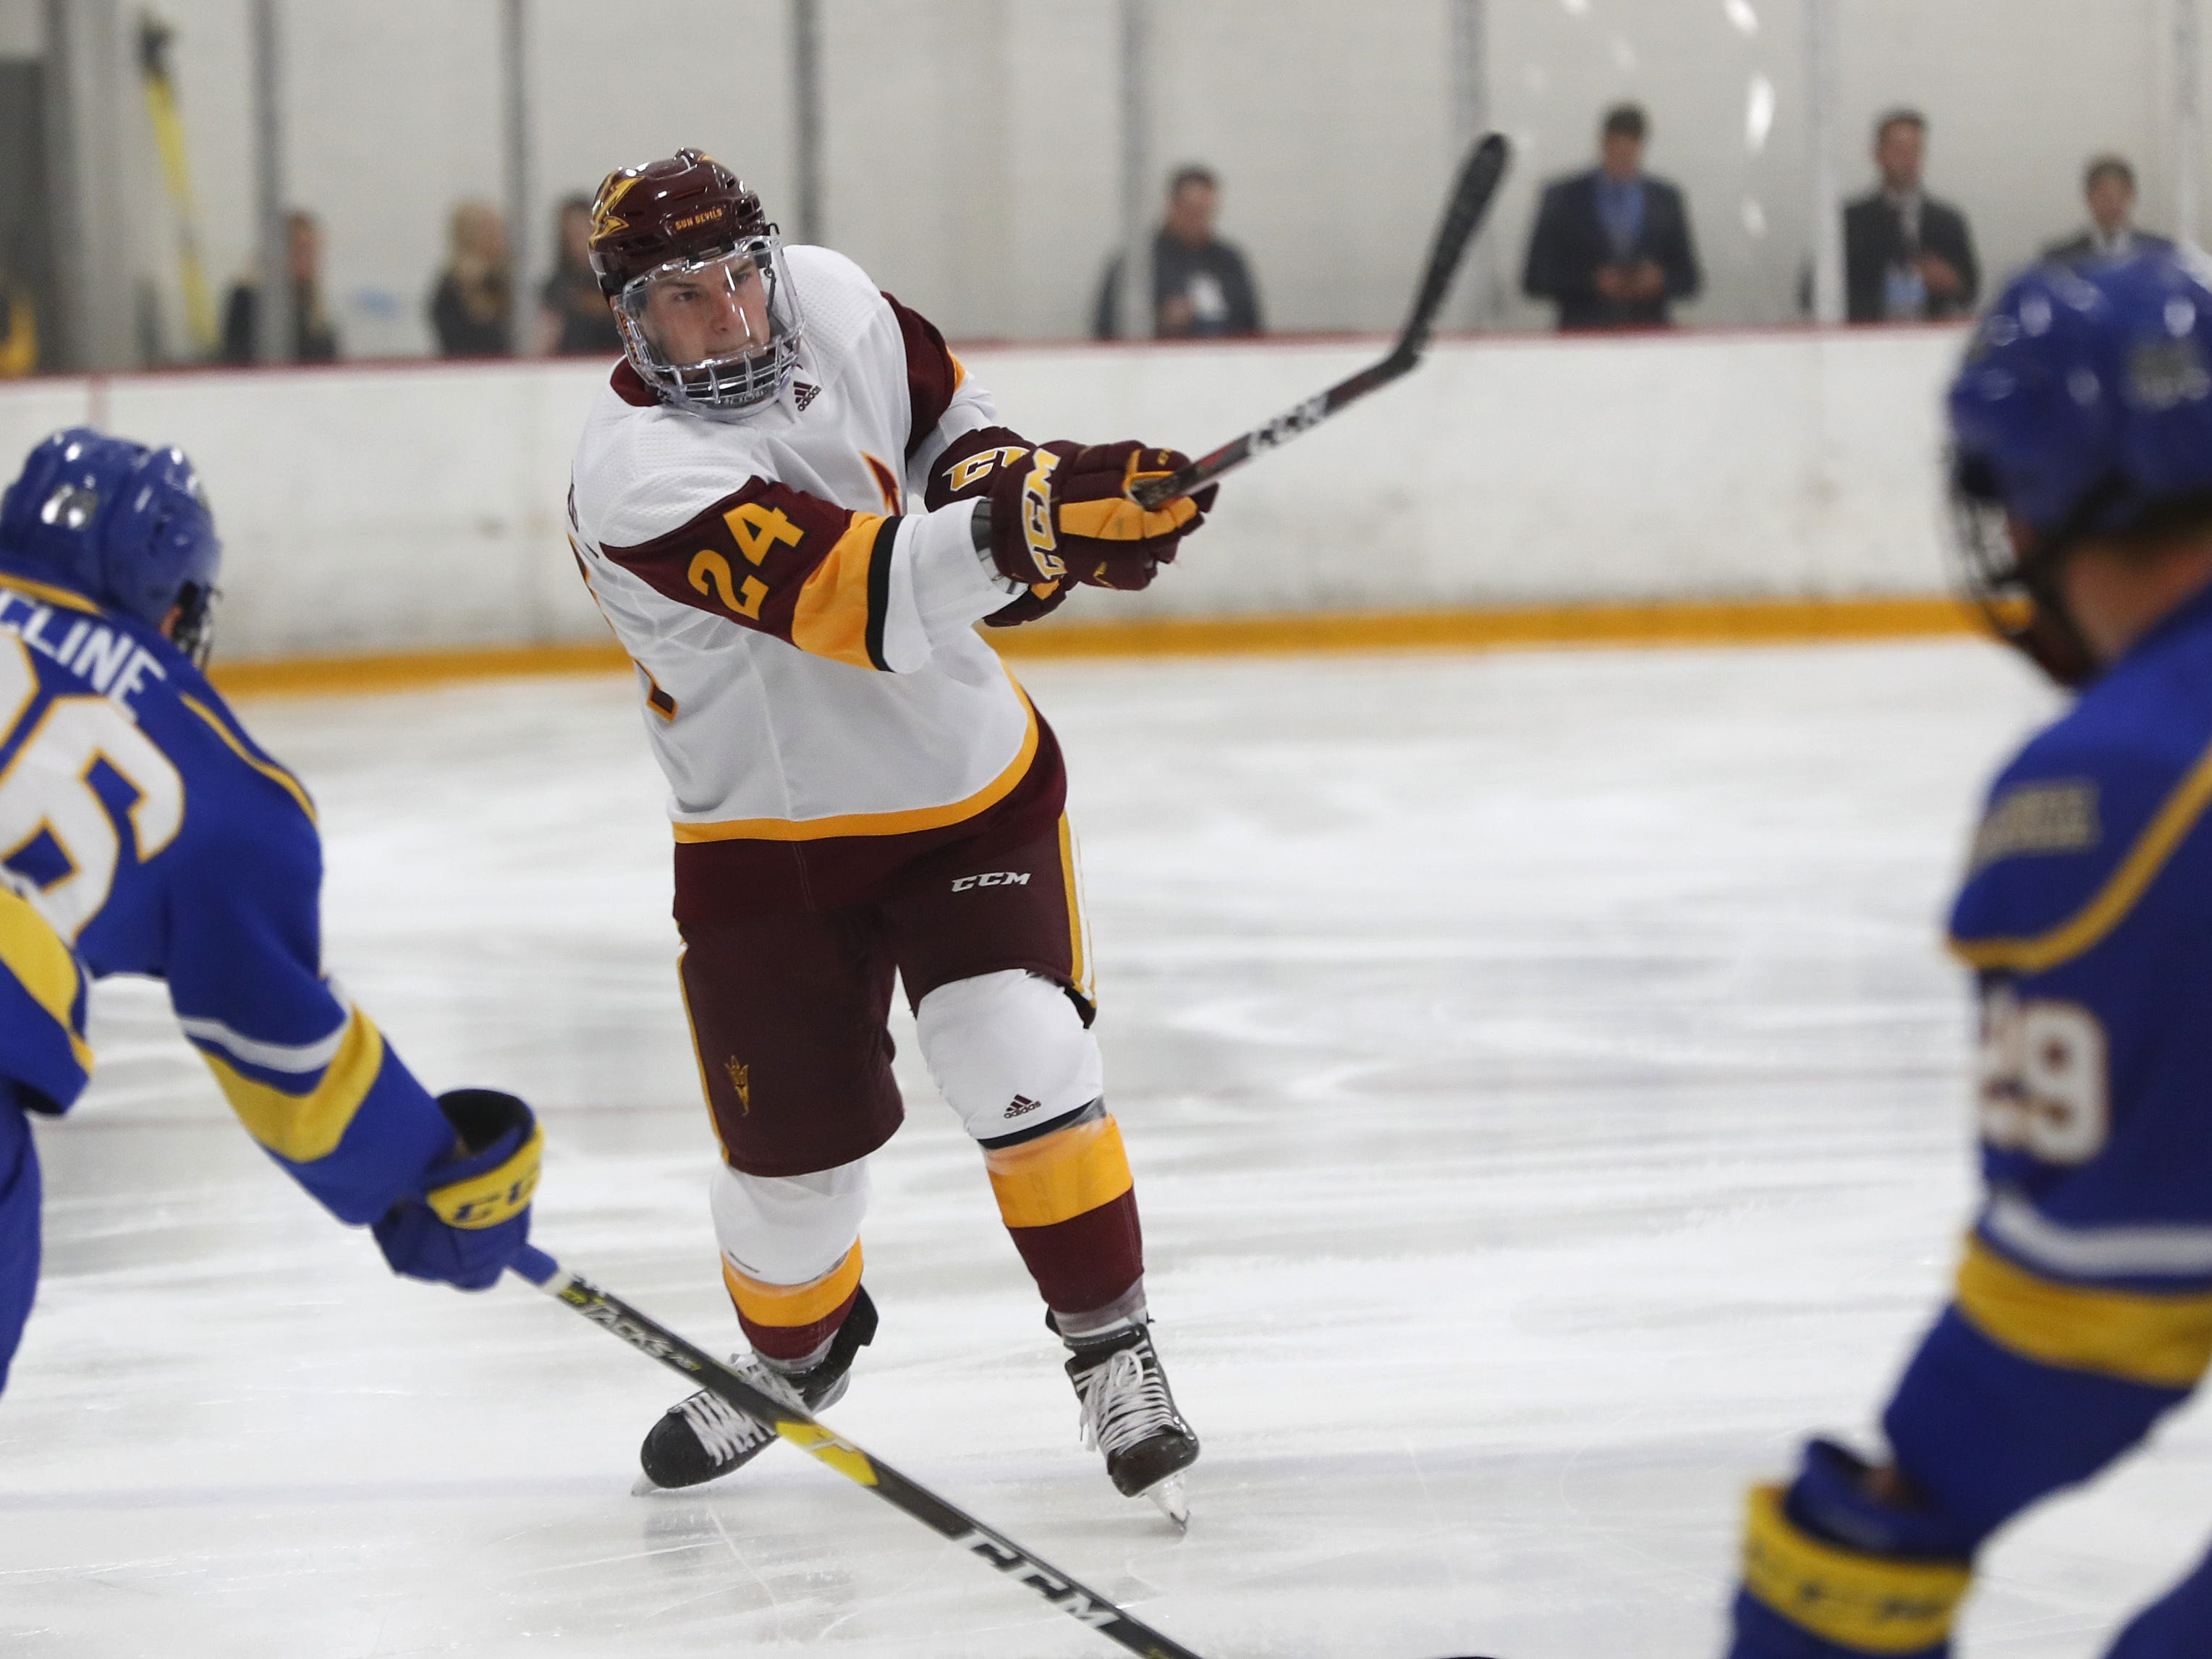 ASU's Joshua Maniscalco (24) shoots against Alaska at Oceanside Ice Arena in Tempe, Ariz. on October 7, 2018.